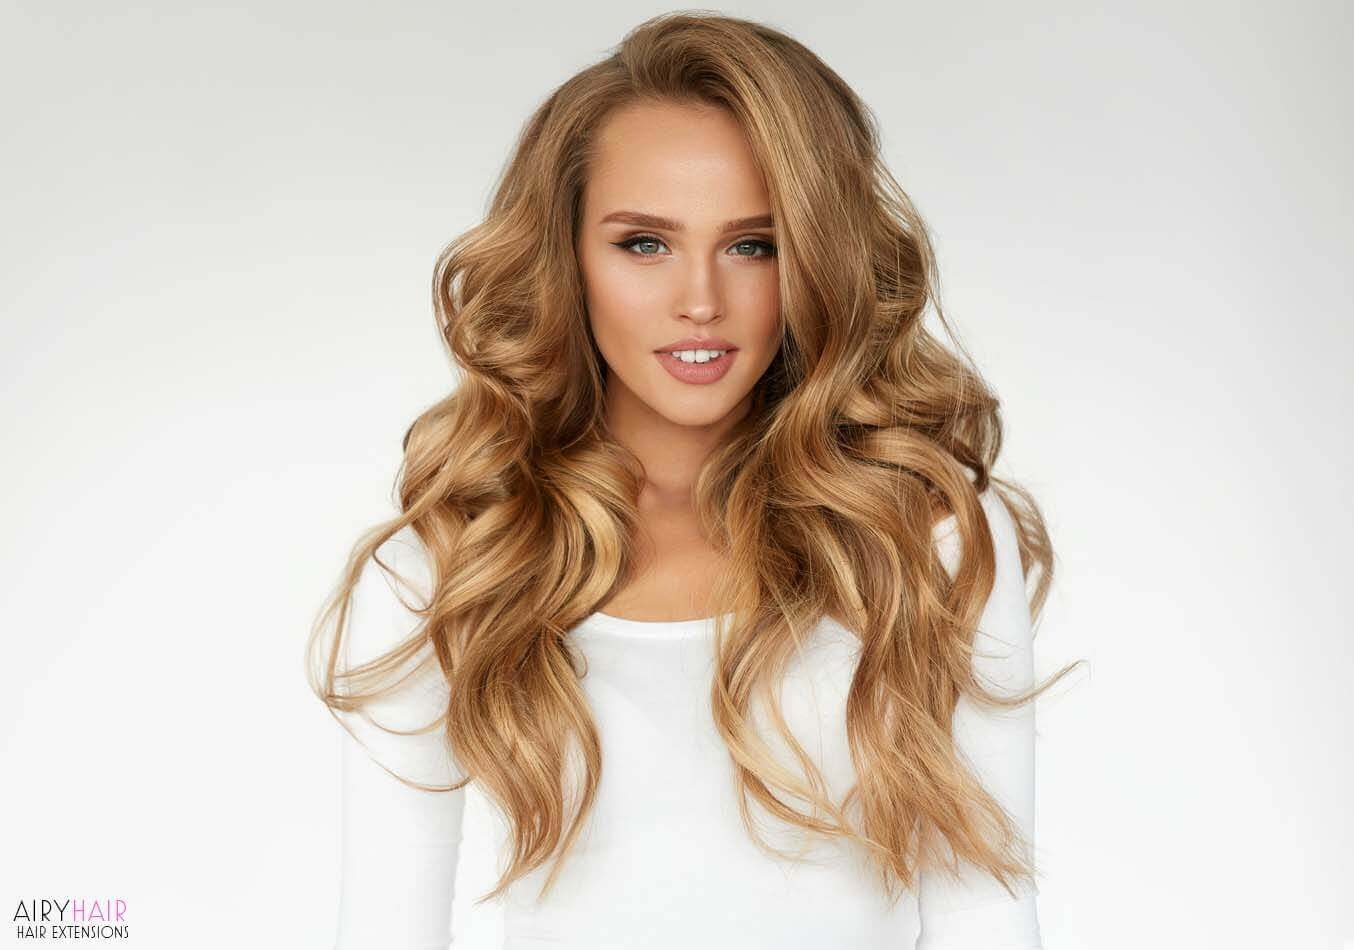 What Are Easy To Apply Hair Extensions